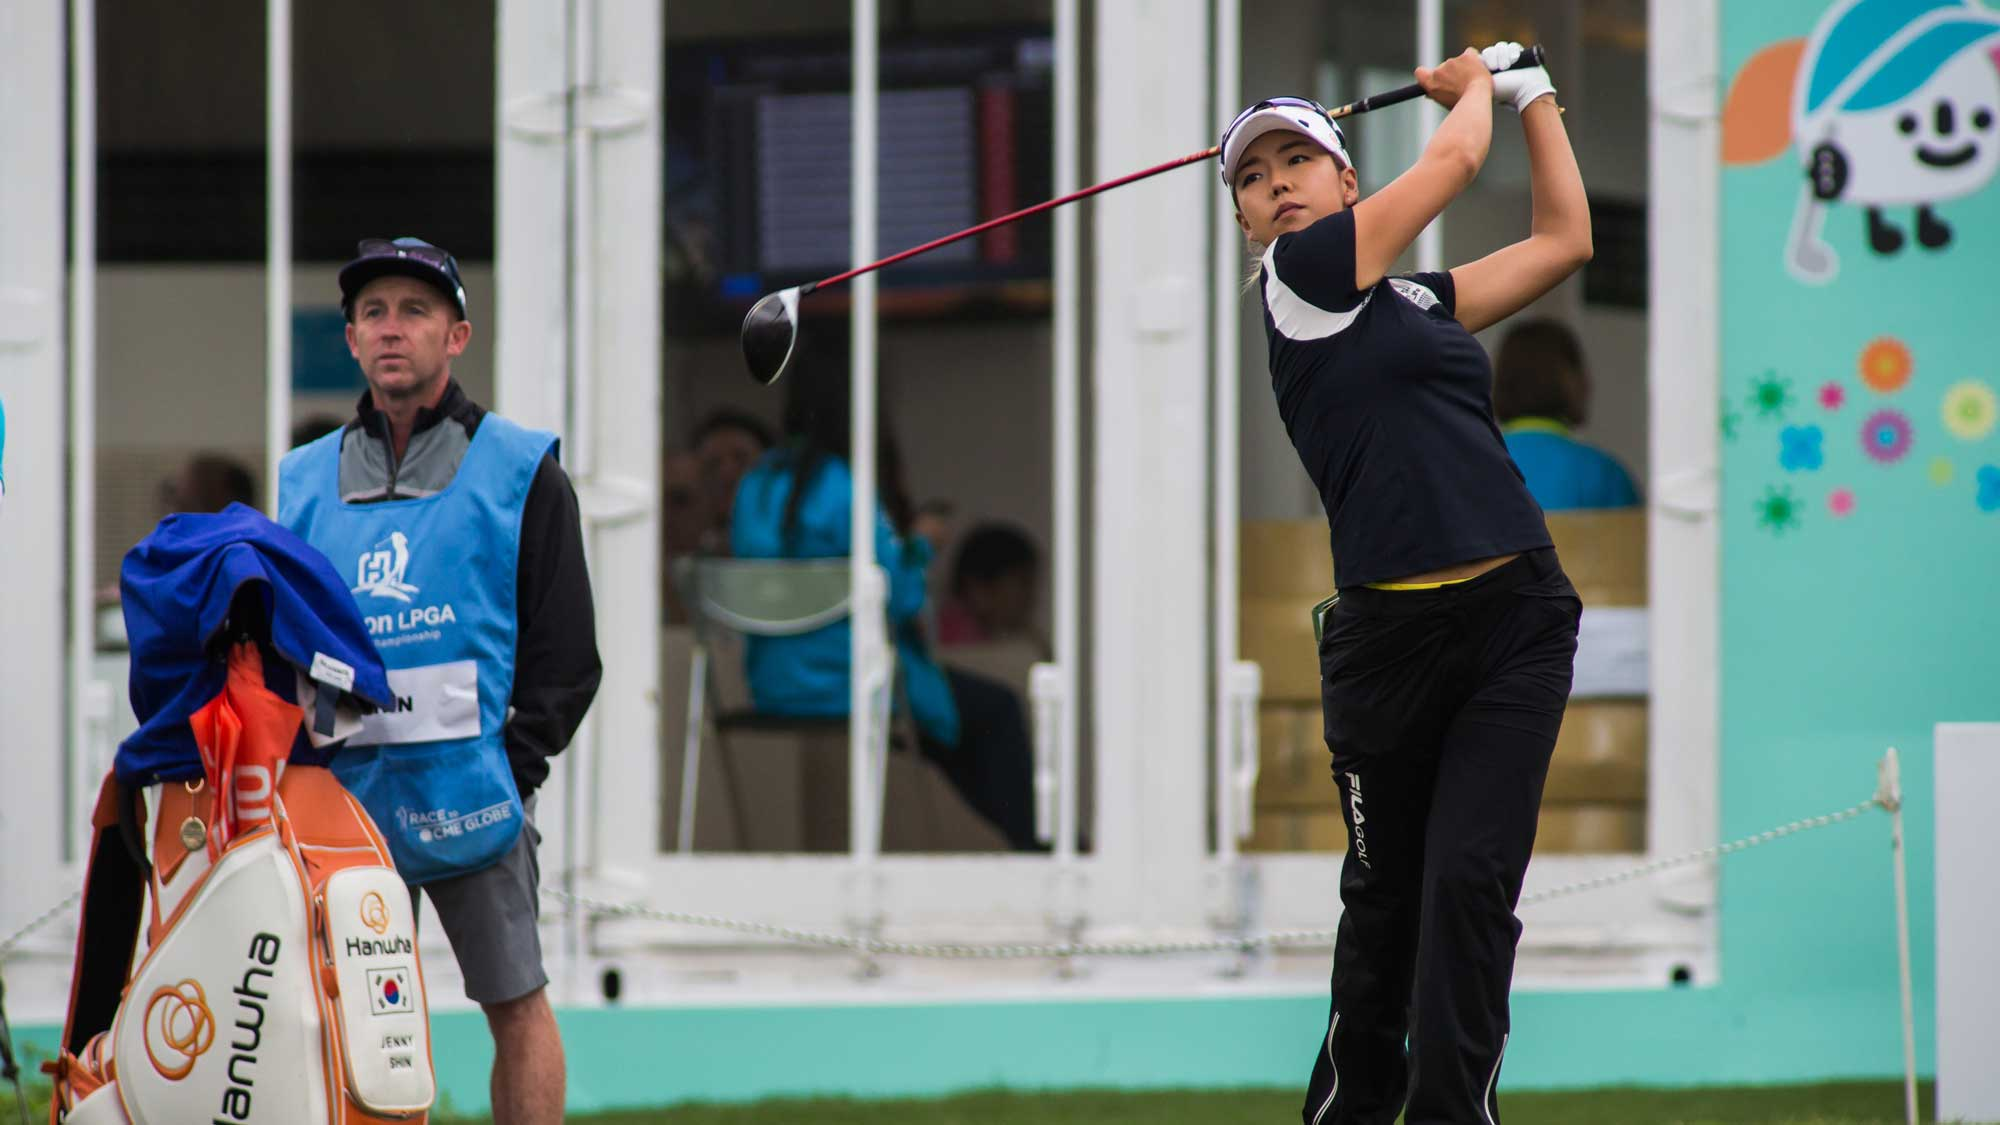 Jenny Shin of Republic of Korea plays a shot in the Fubon Taiwan LPGA Championship